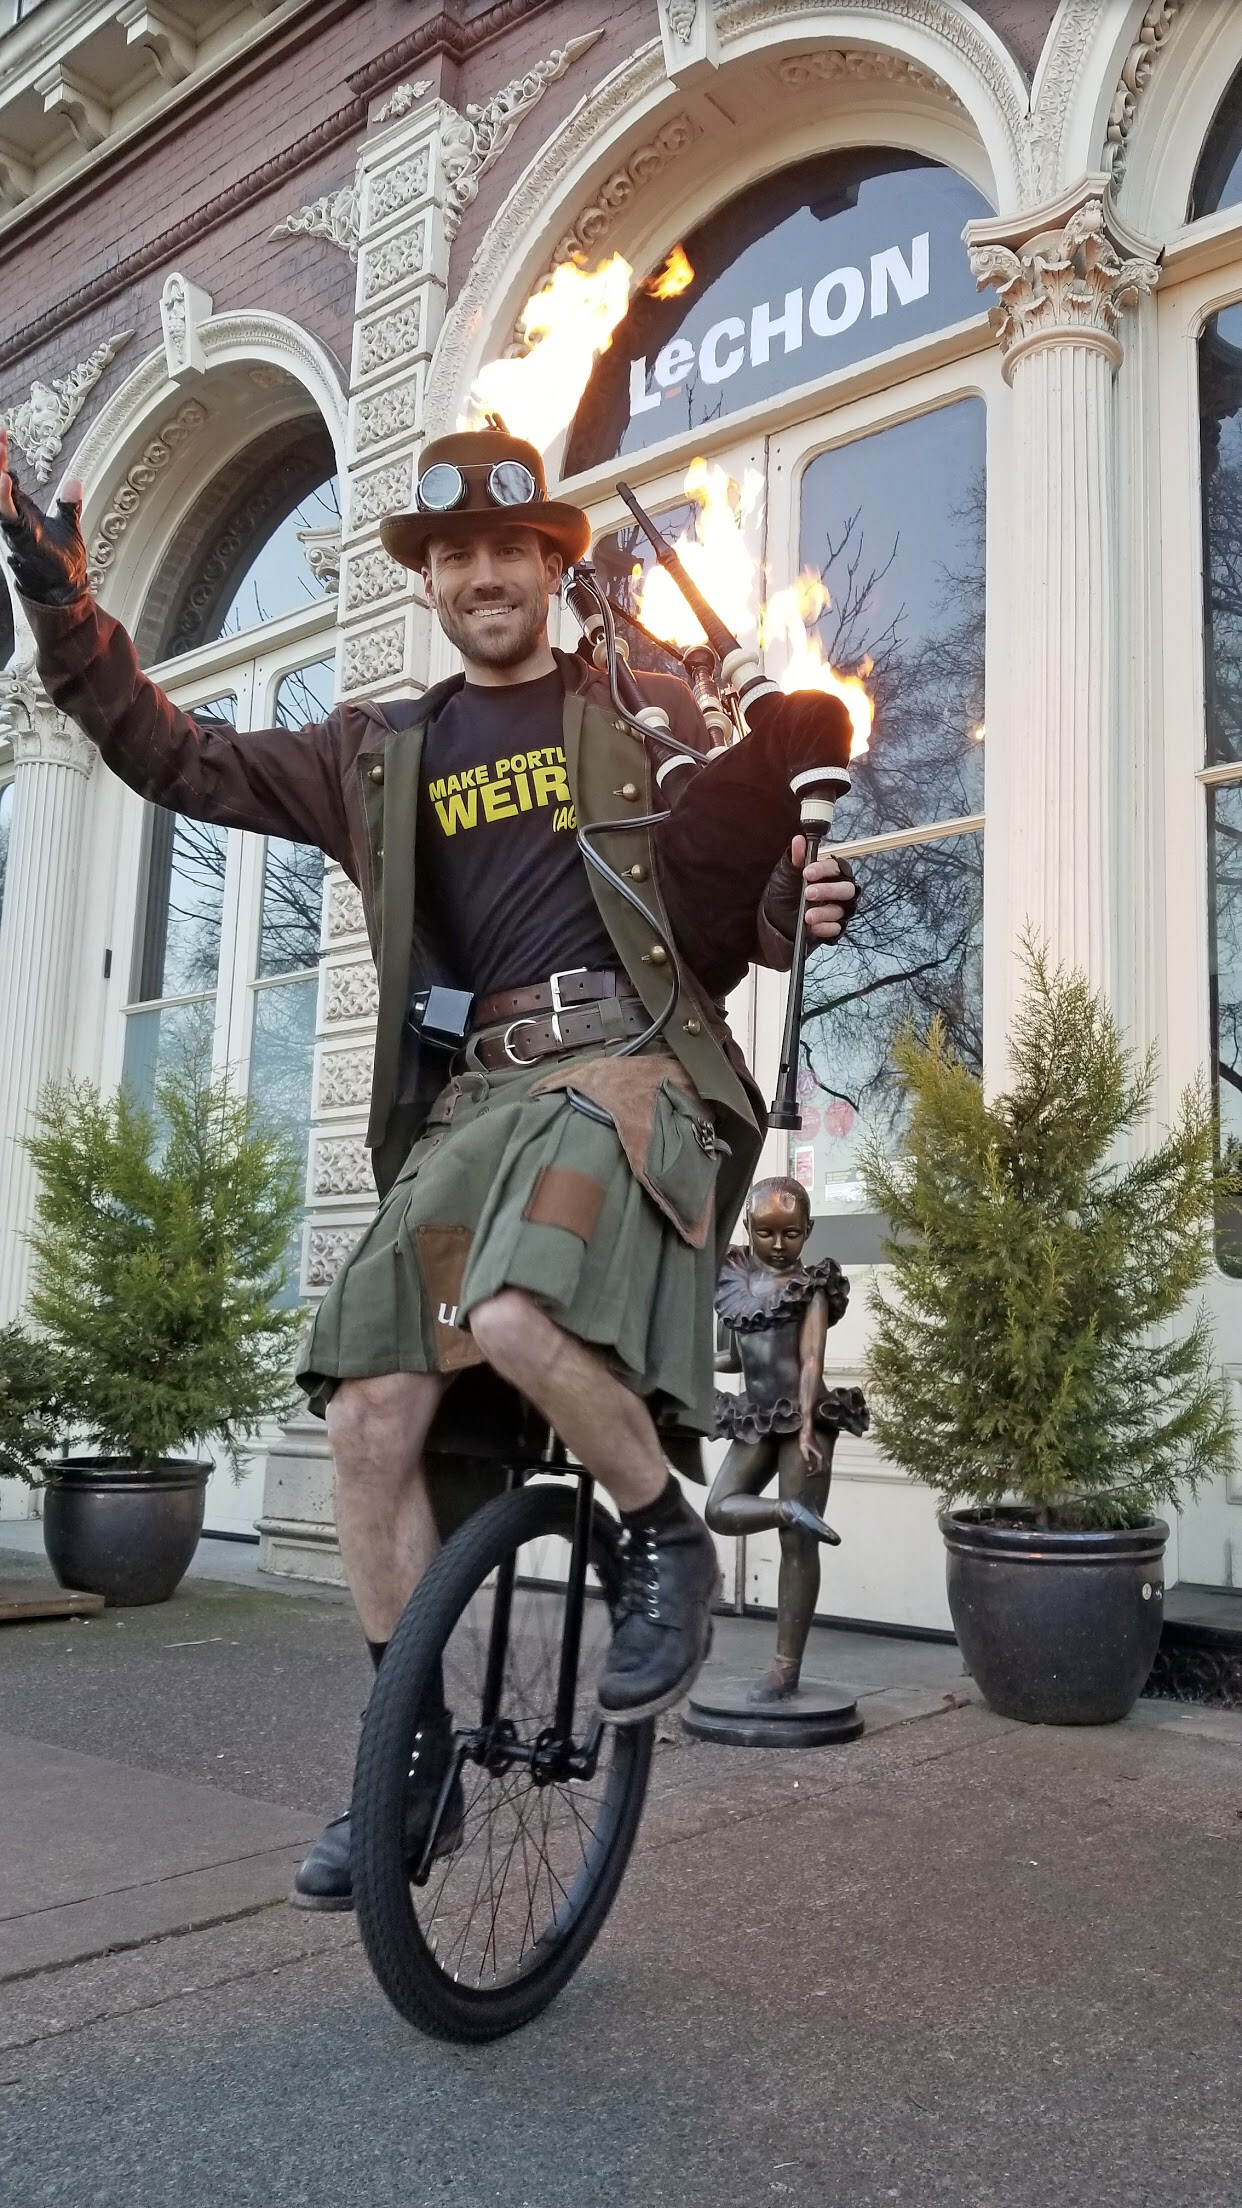 The Unipiper makes his way through Downtown Portland.